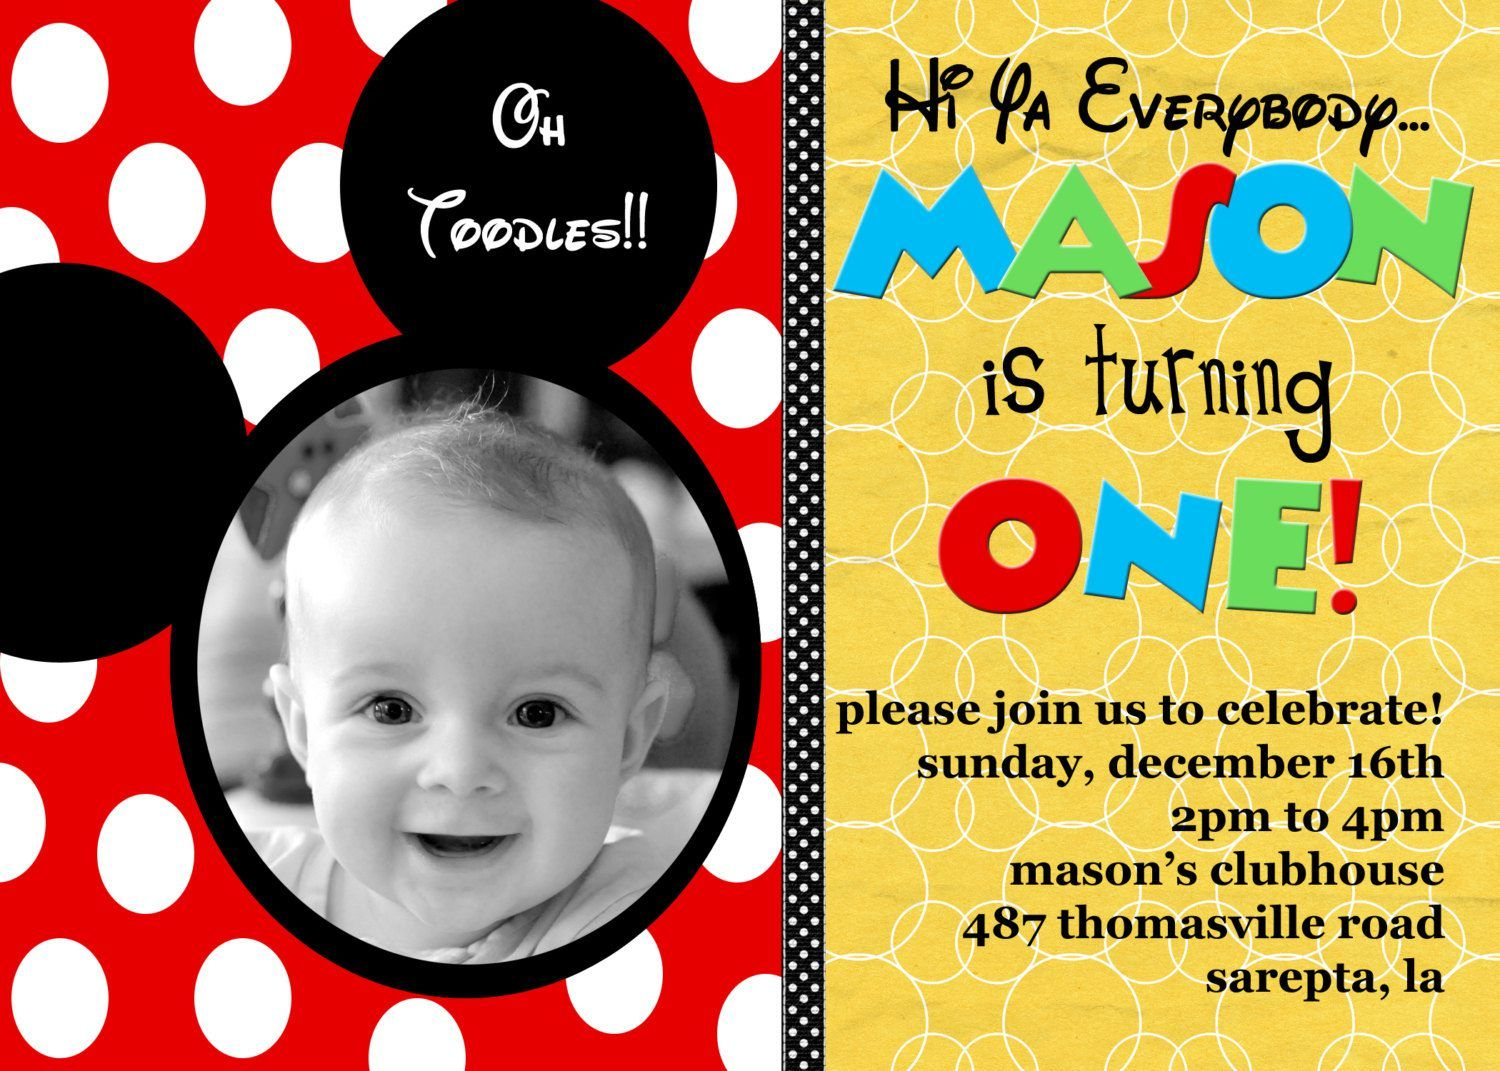 Freeprintablemickeymousebirthdayinvitationcards Birthday - Free 1st birthday invitation templates printable